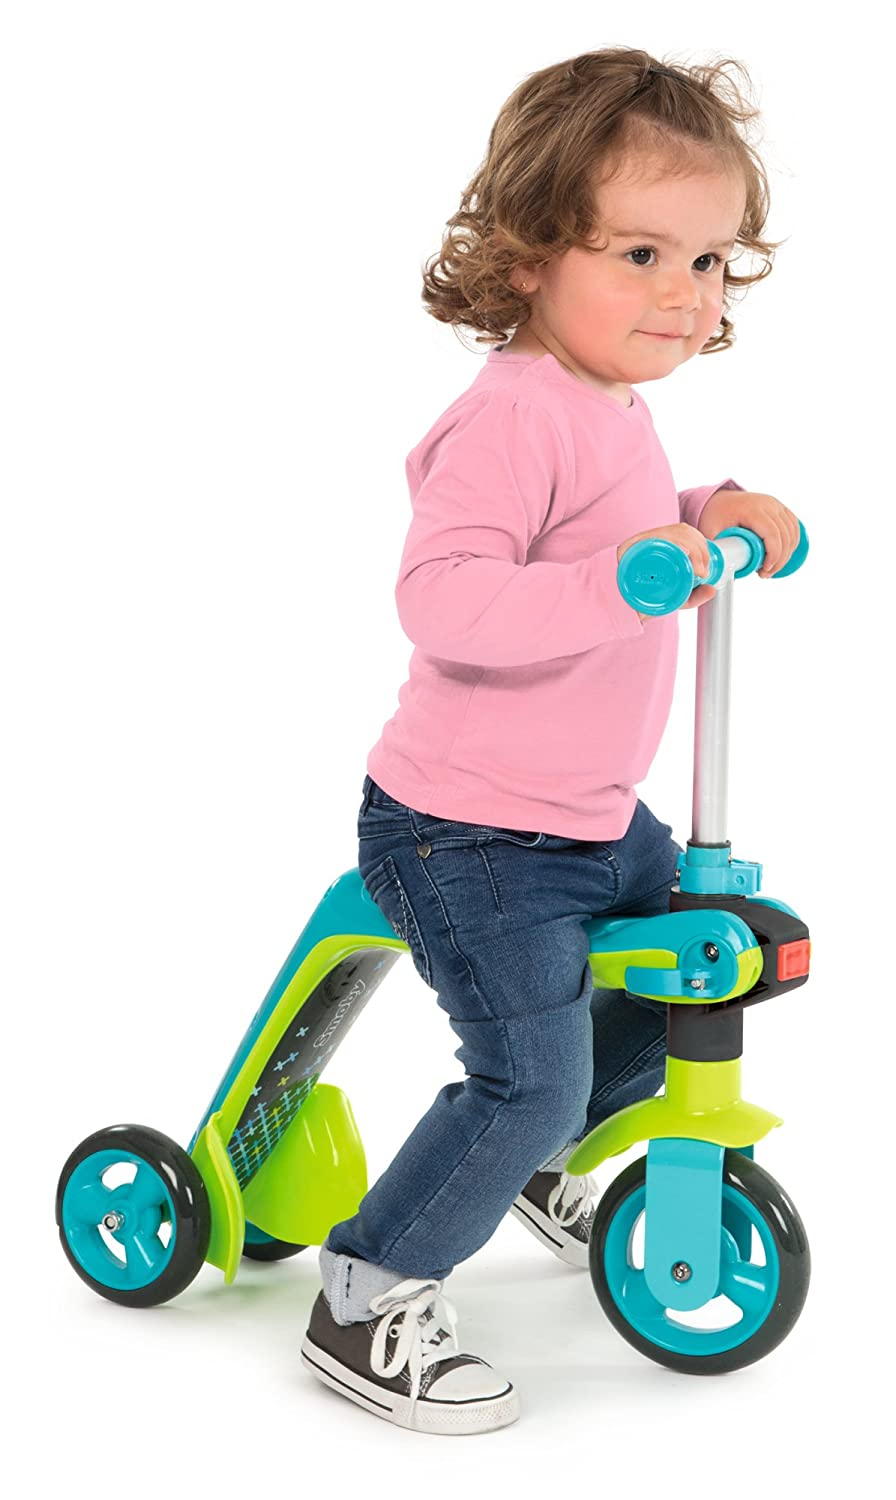 Amazon.com: Smoby Reversible 2 in 1 Scooter Toy, Blue: Toys ...